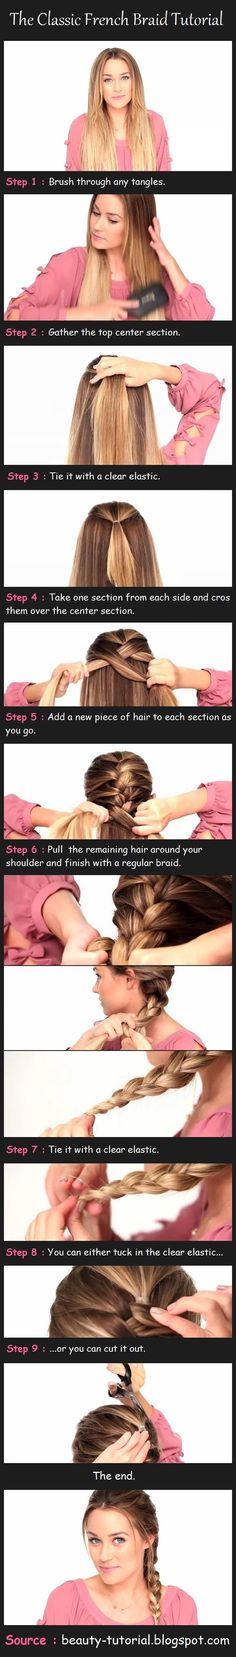 DIY Braided Hair Tutorials for Winter The Classic French Braid Step-By-Step Pictorial - It's all about using a clear plastic hair tie!The Classic French Braid Step-By-Step Pictorial - It's all about using a clear plastic hair tie! Pretty Hairstyles, Braided Hairstyles, Sport Hairstyles, Easy Little Girl Hairstyles, Hairstyles 2016, Trending Hairstyles, Braided Updo, Latest Hairstyles, Natural Hairstyles